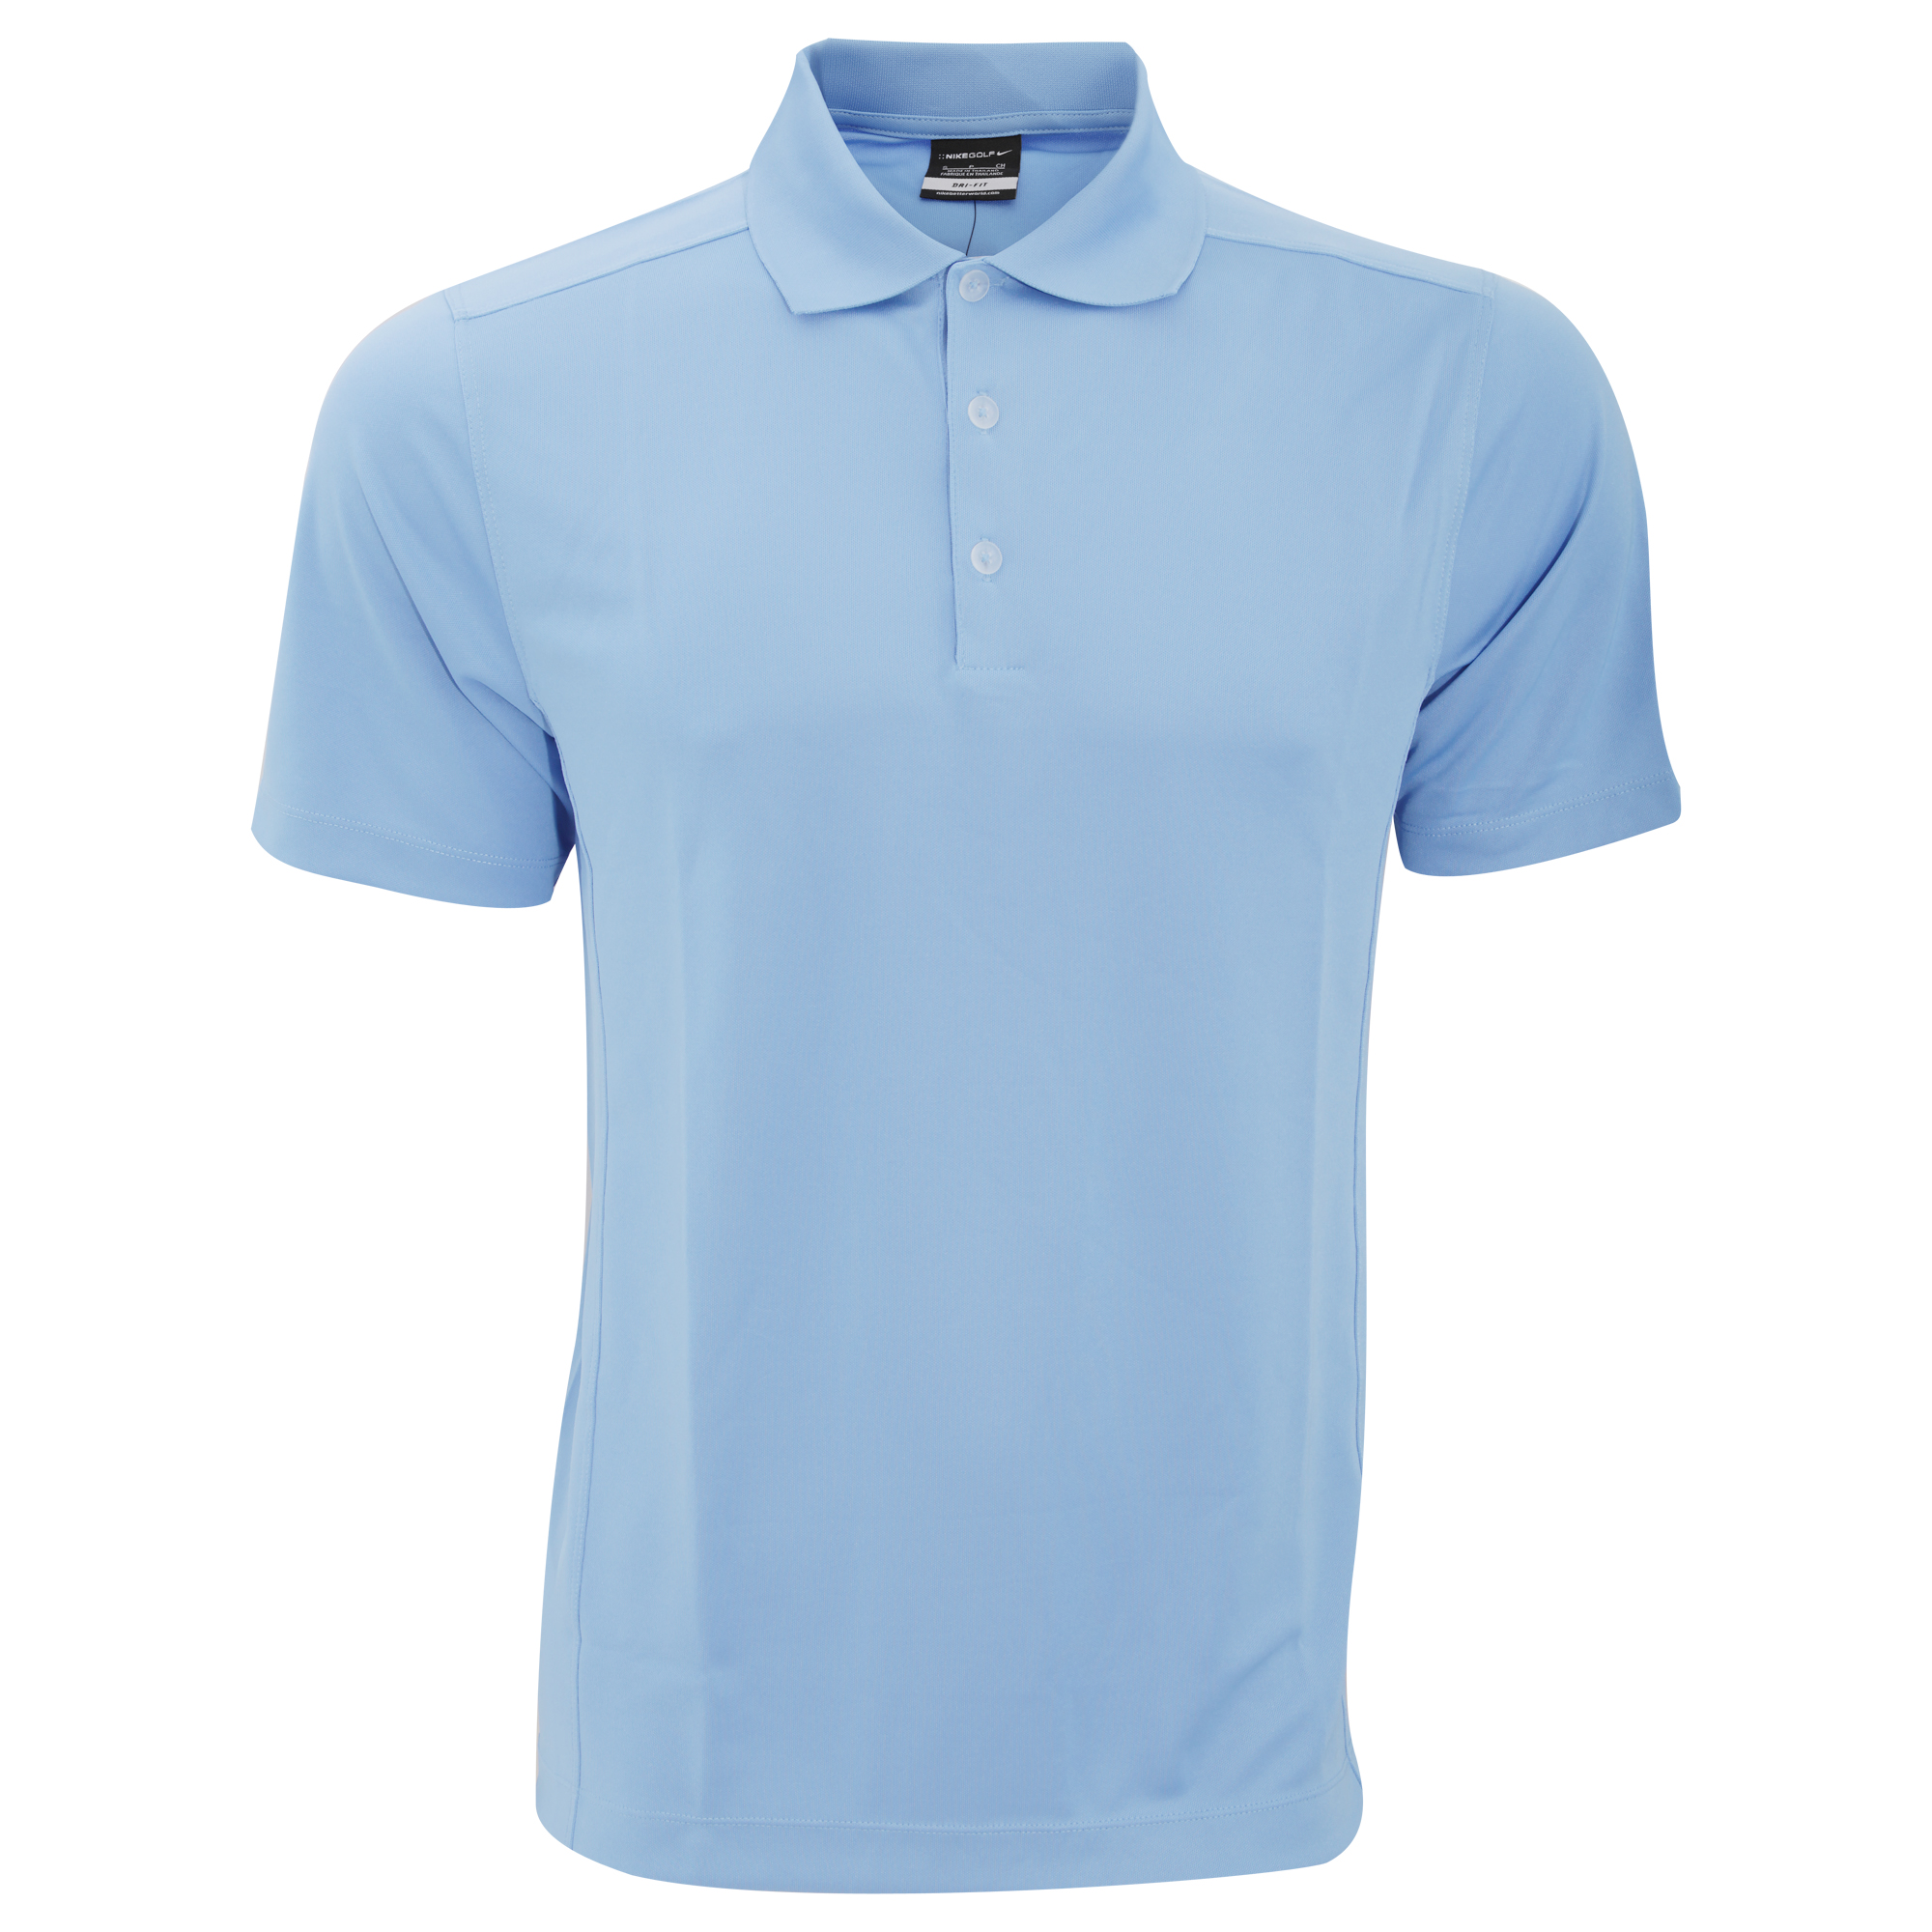 Nike Mens Dry-Fit Sports Plain Short Sleeve Polo Shirt /T ...